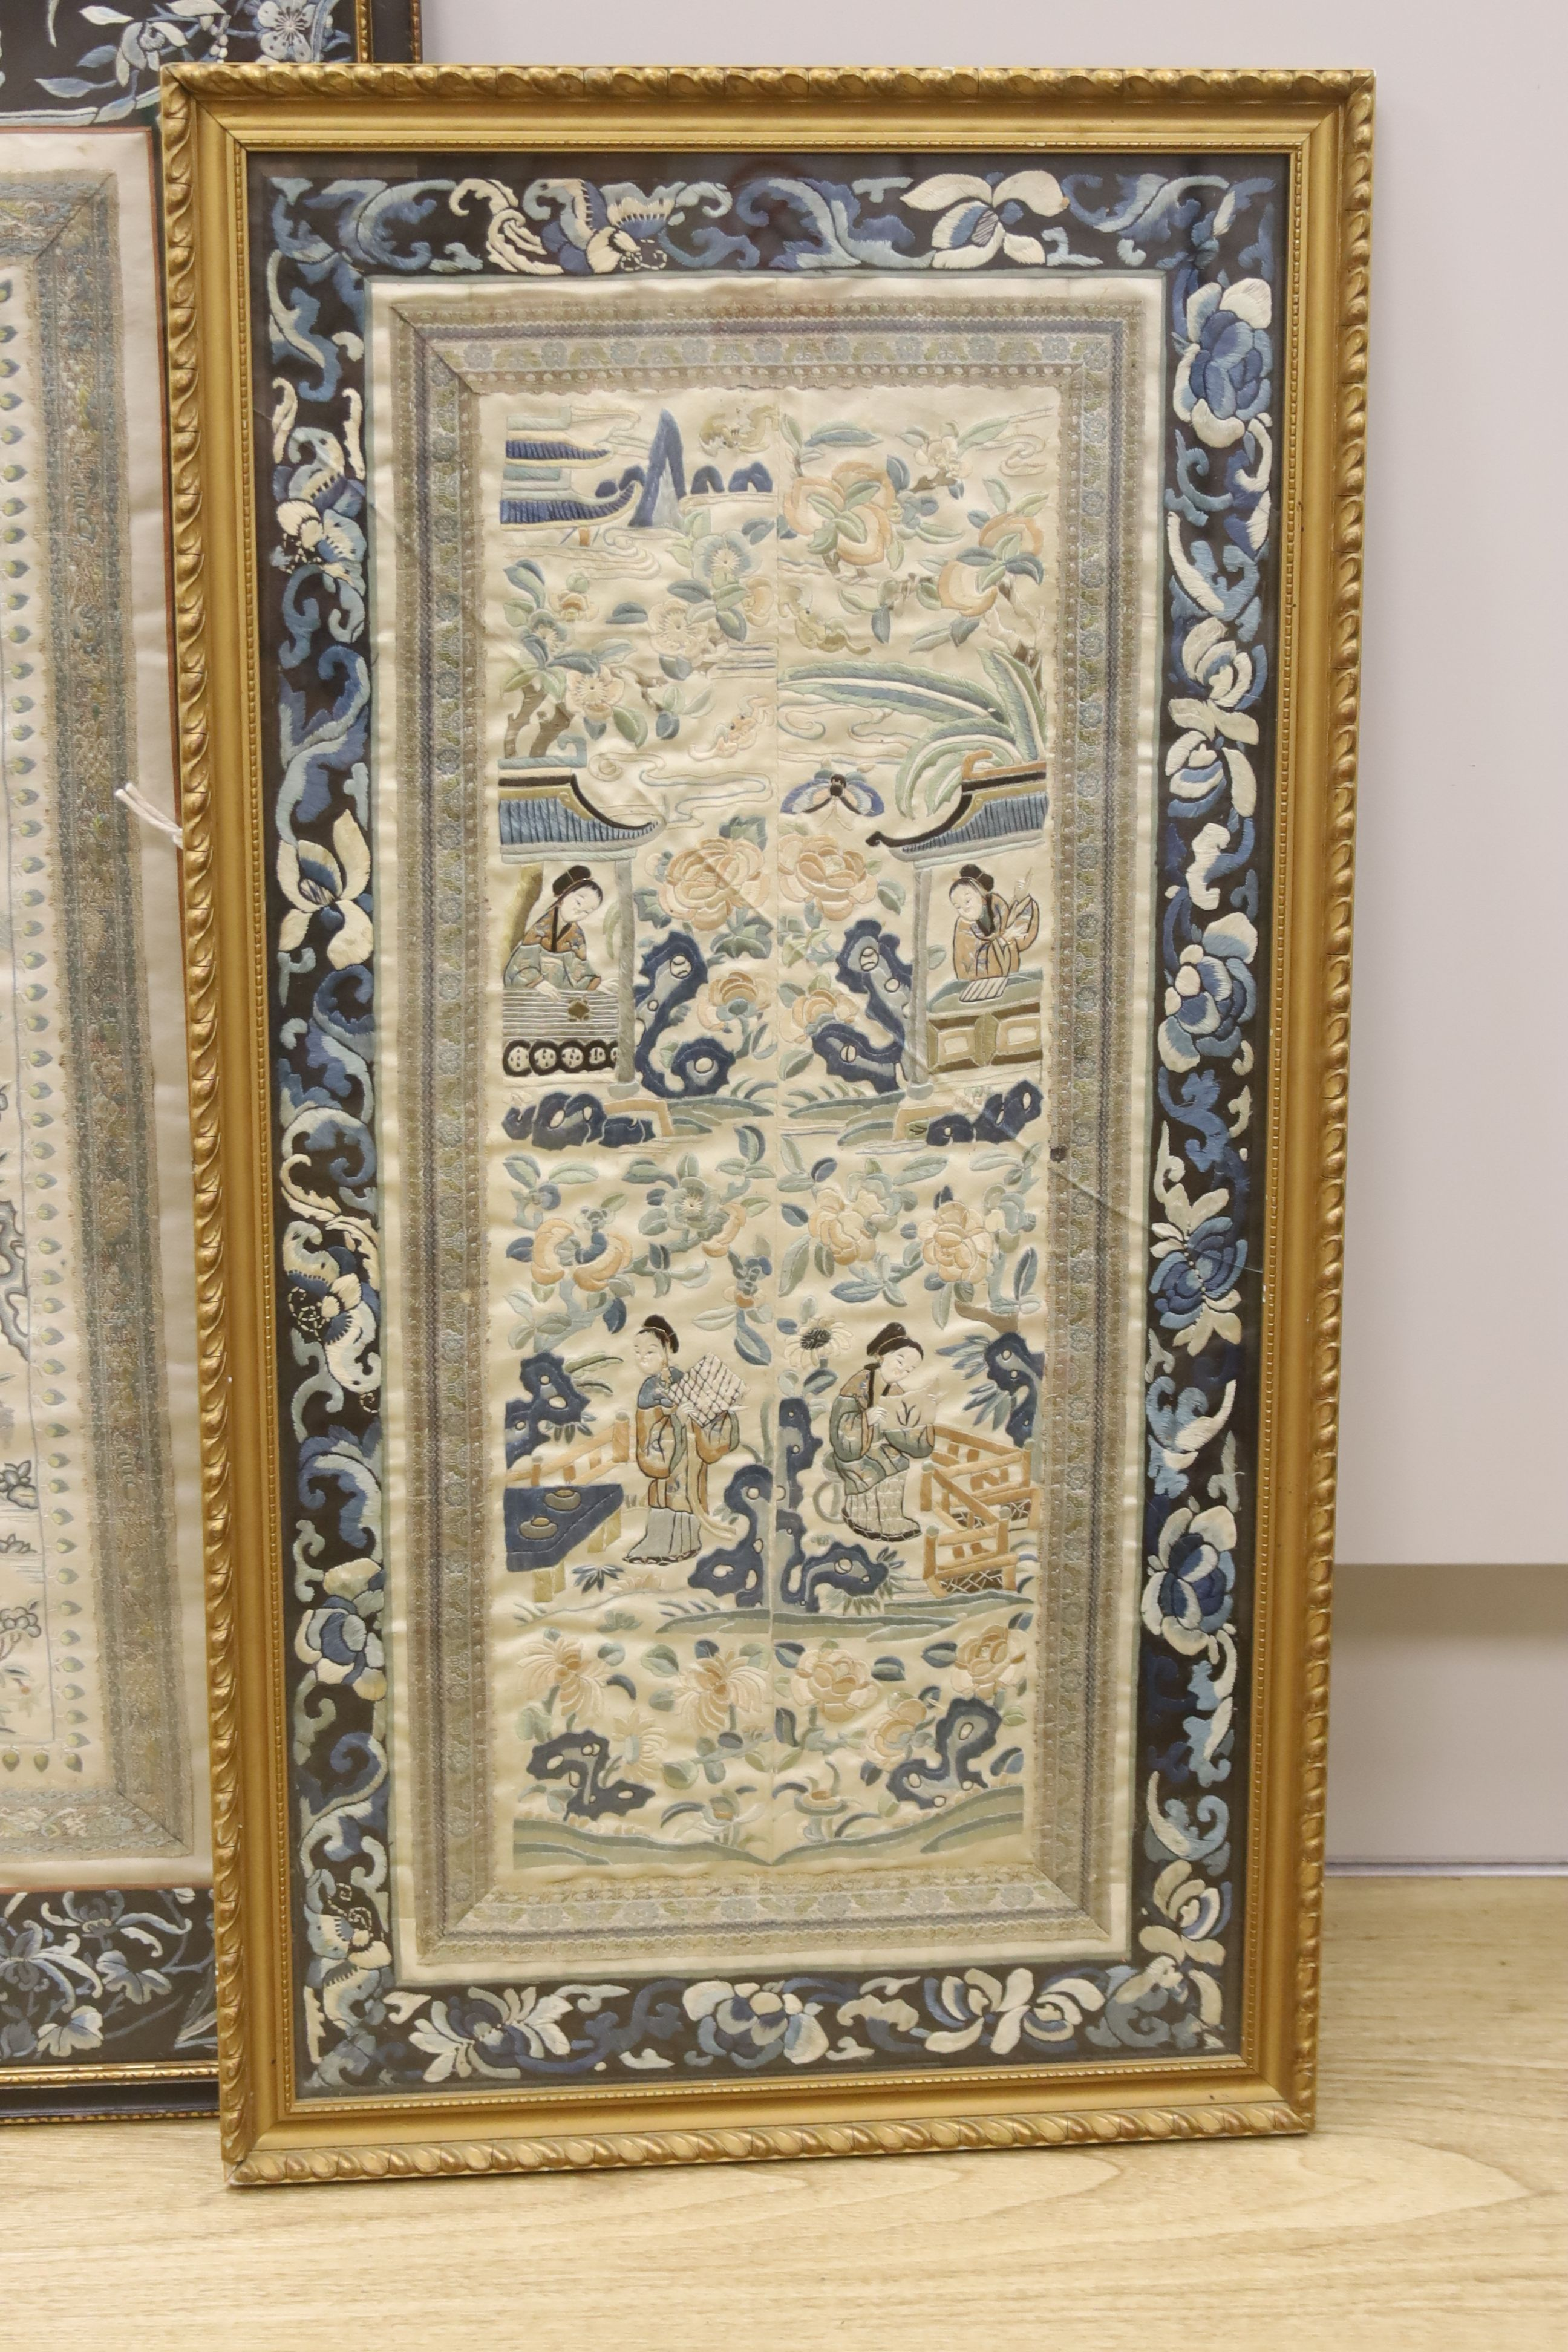 Two framed Chinese late Qing embroidered silk panels71 x 39cm & 62 x 32cm - Image 3 of 3